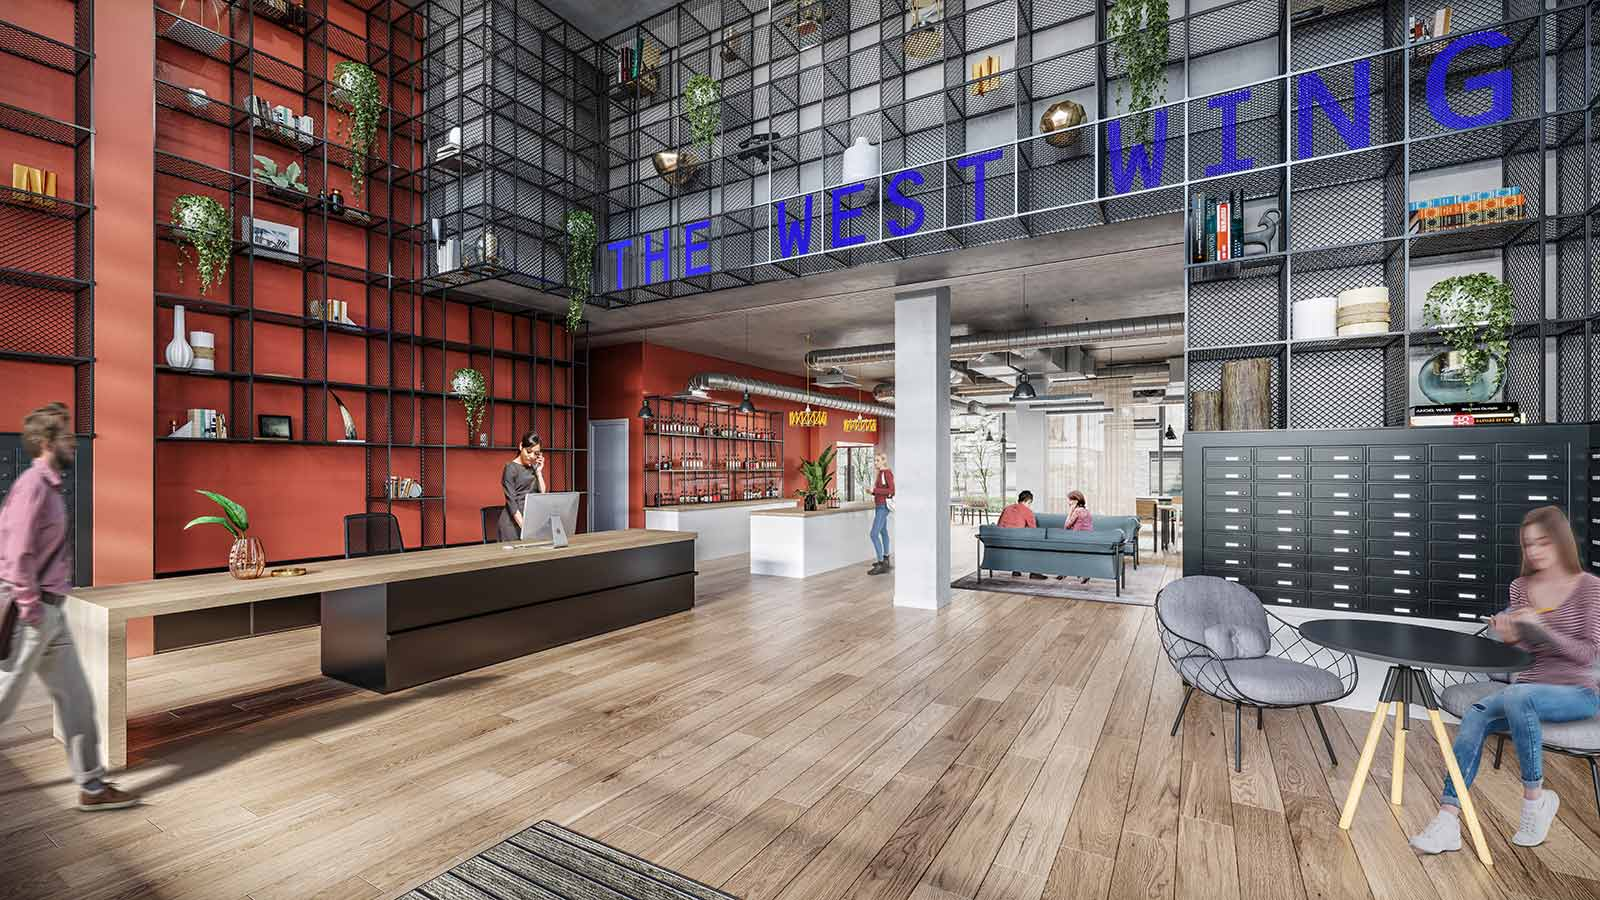 The West Wing reception